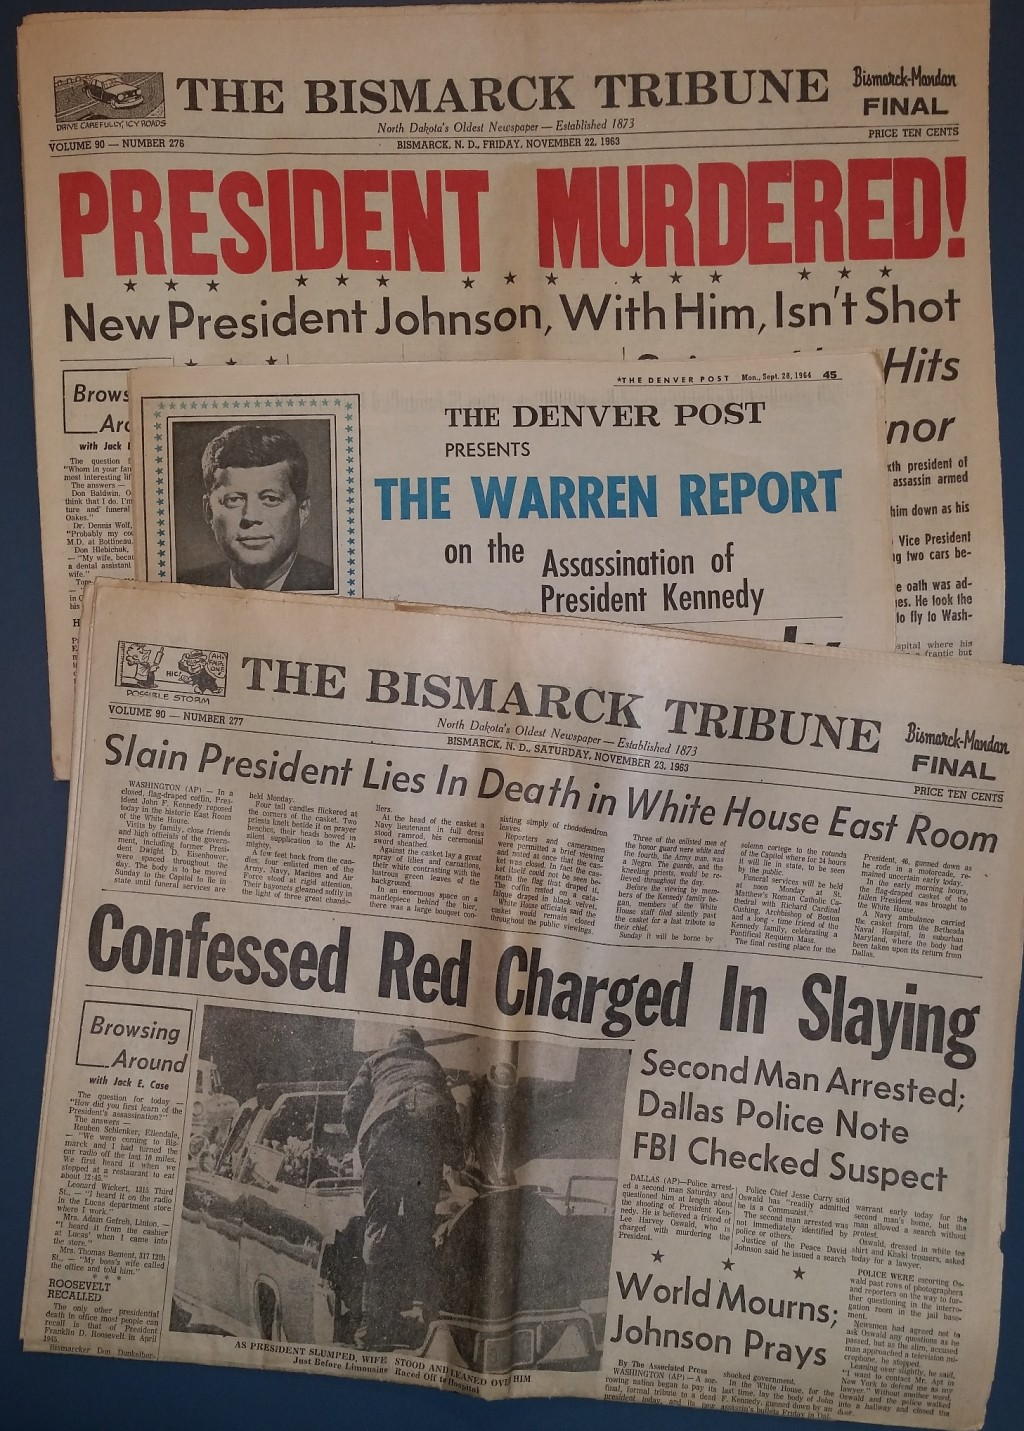 001 Jfk Essay Contest An About John Kennedy Assassination On The Of Impressive Winners Requirements Large